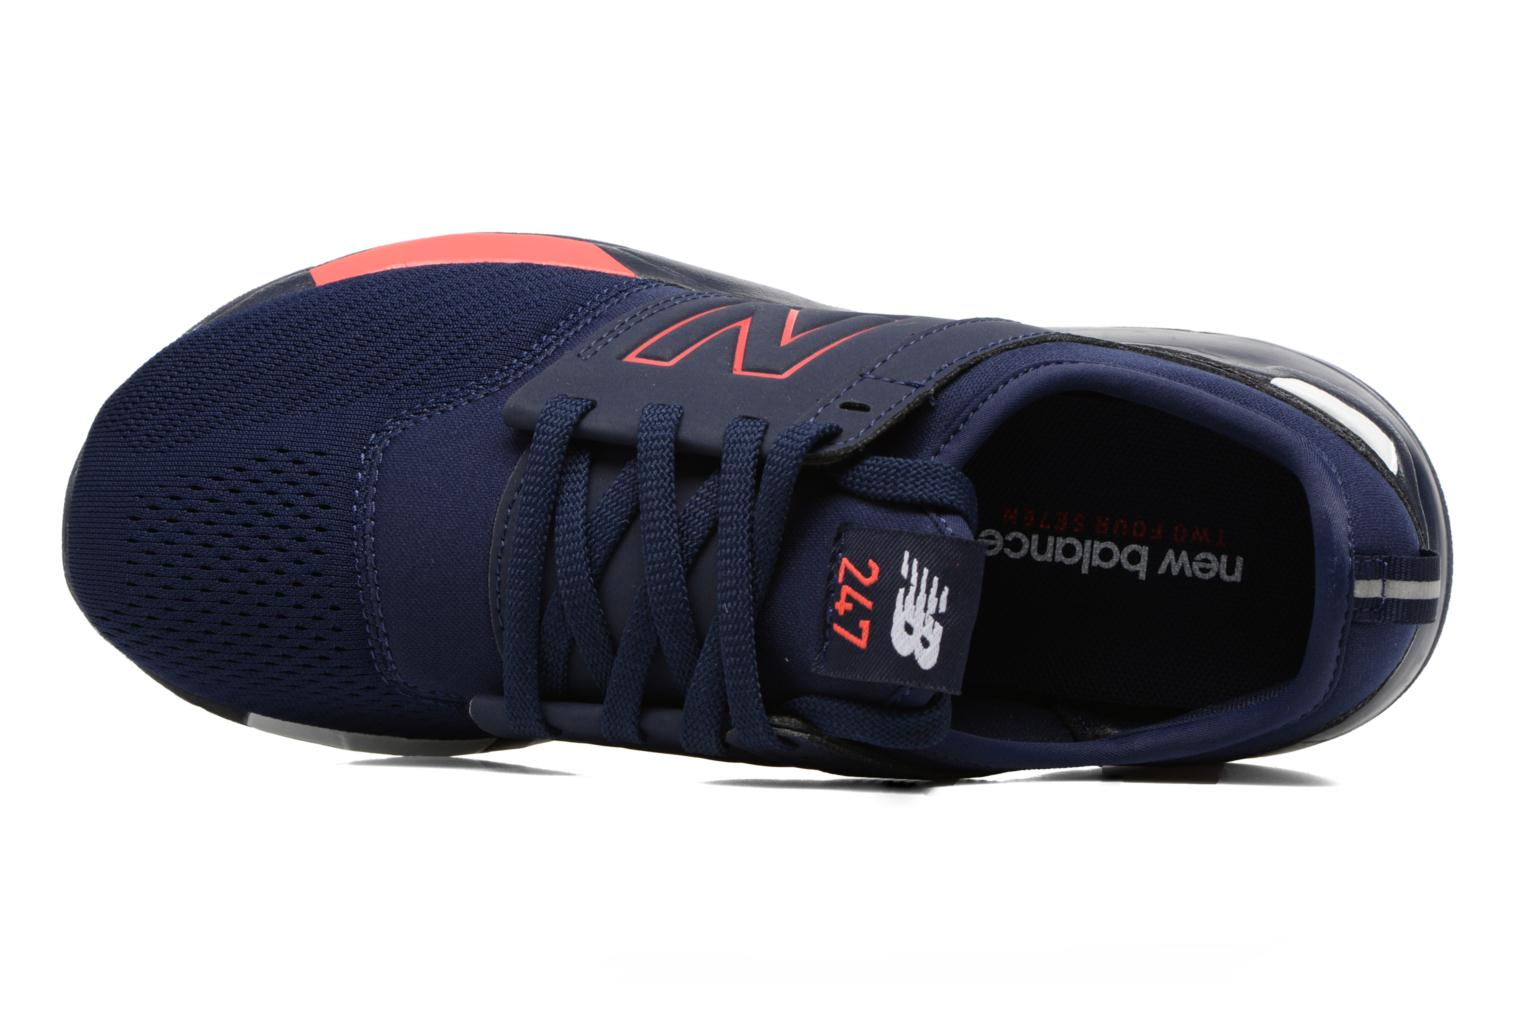 KL247 NRG Navy/Red